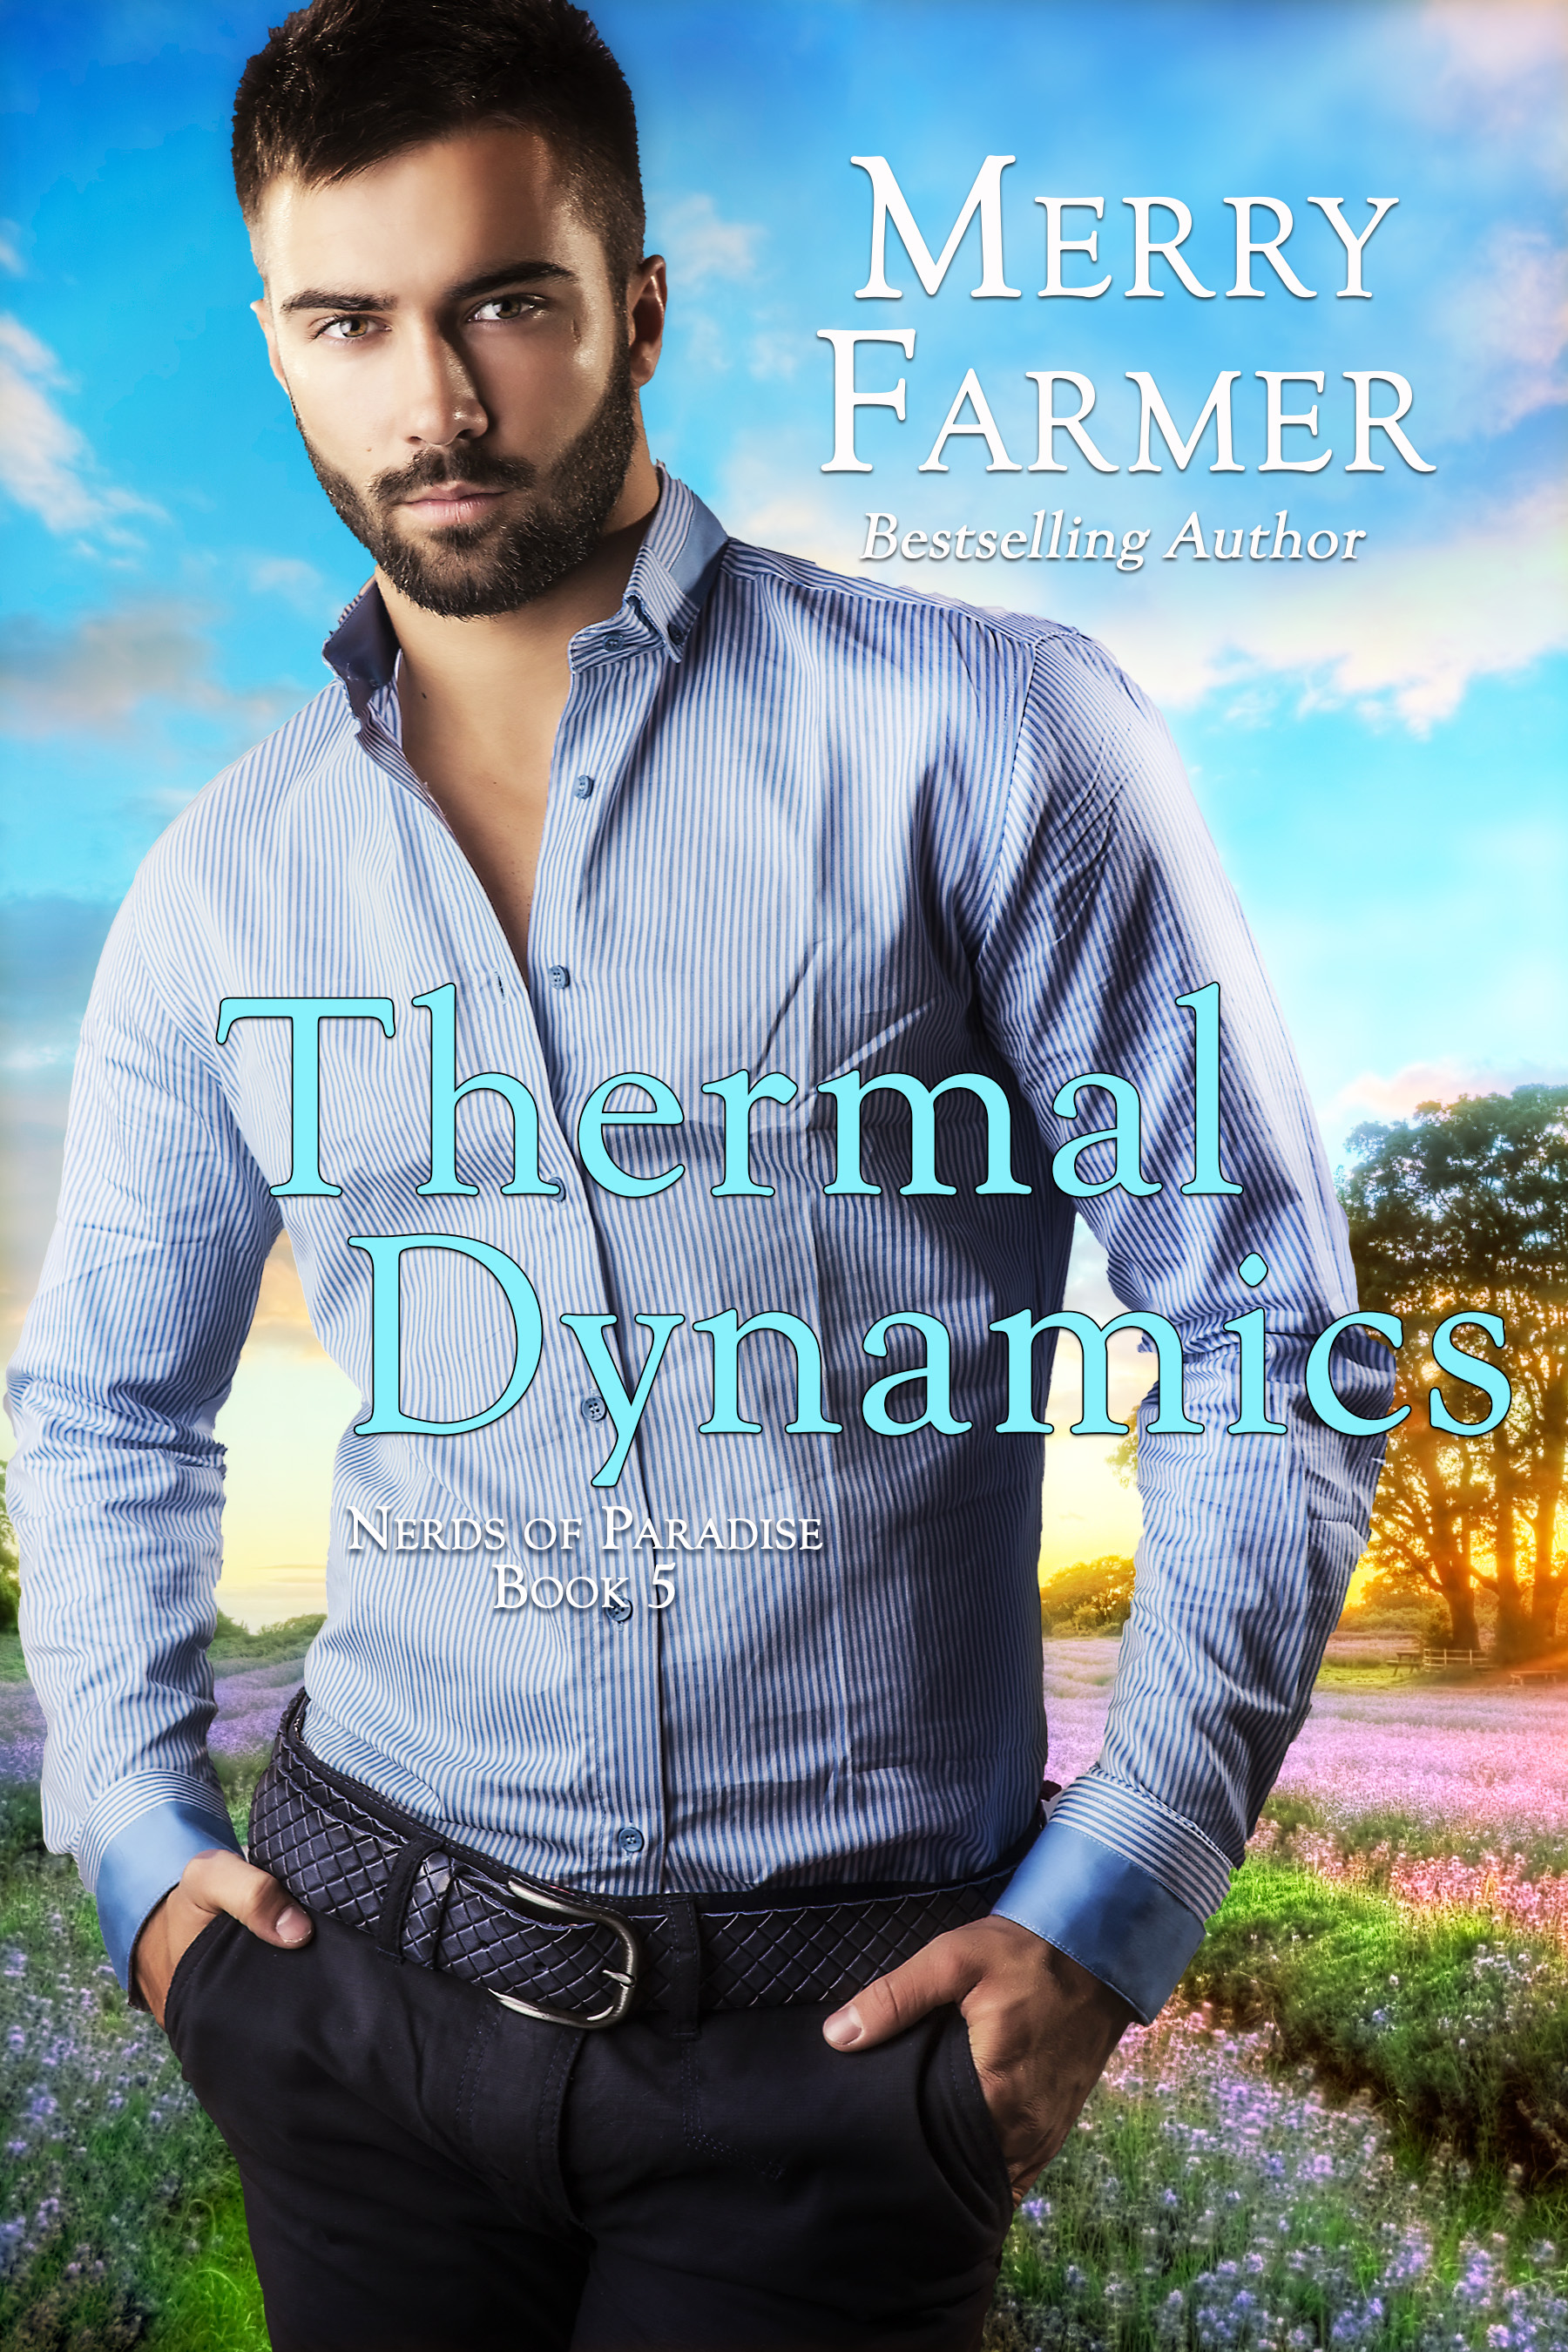 Thermal Dynamics (Book 5) - Lawyer Sandy Templesmith is a fighter at heart. Growing up as one of only a handful of black women in Haskell, Wyoming, she has worn her strength instead of her heart on her sleeve, especially with the likes of Ronny Bonneville panting after her. So when she meets Joginder Sandhu, she is finally able to breathe deeply, relax, and have fun.Until her old habits ruin everything.Jogi has never met a woman like Sandy, and even after their hot fling falls apart, he can't stop thinking about her. Not while tackling his work as an IT tech at Paradise Space Flight and not while pursuing his passion as a photographer. He still wants her, but pain and betrayal keep them apart.At least until the two are paired up for a sizzling dance competition.Forced to waltz, quick-step, and tango through their issues, Sandy and Jogi dance around each other and their failed attempt at love. But love has other plans. When the stakes of the competition are raised, so is the heat level between them. Their shared determination to beat the Bonnevilles could be their second chance at love.PLEASE BE ADVISED: Steam Level – Very Hot